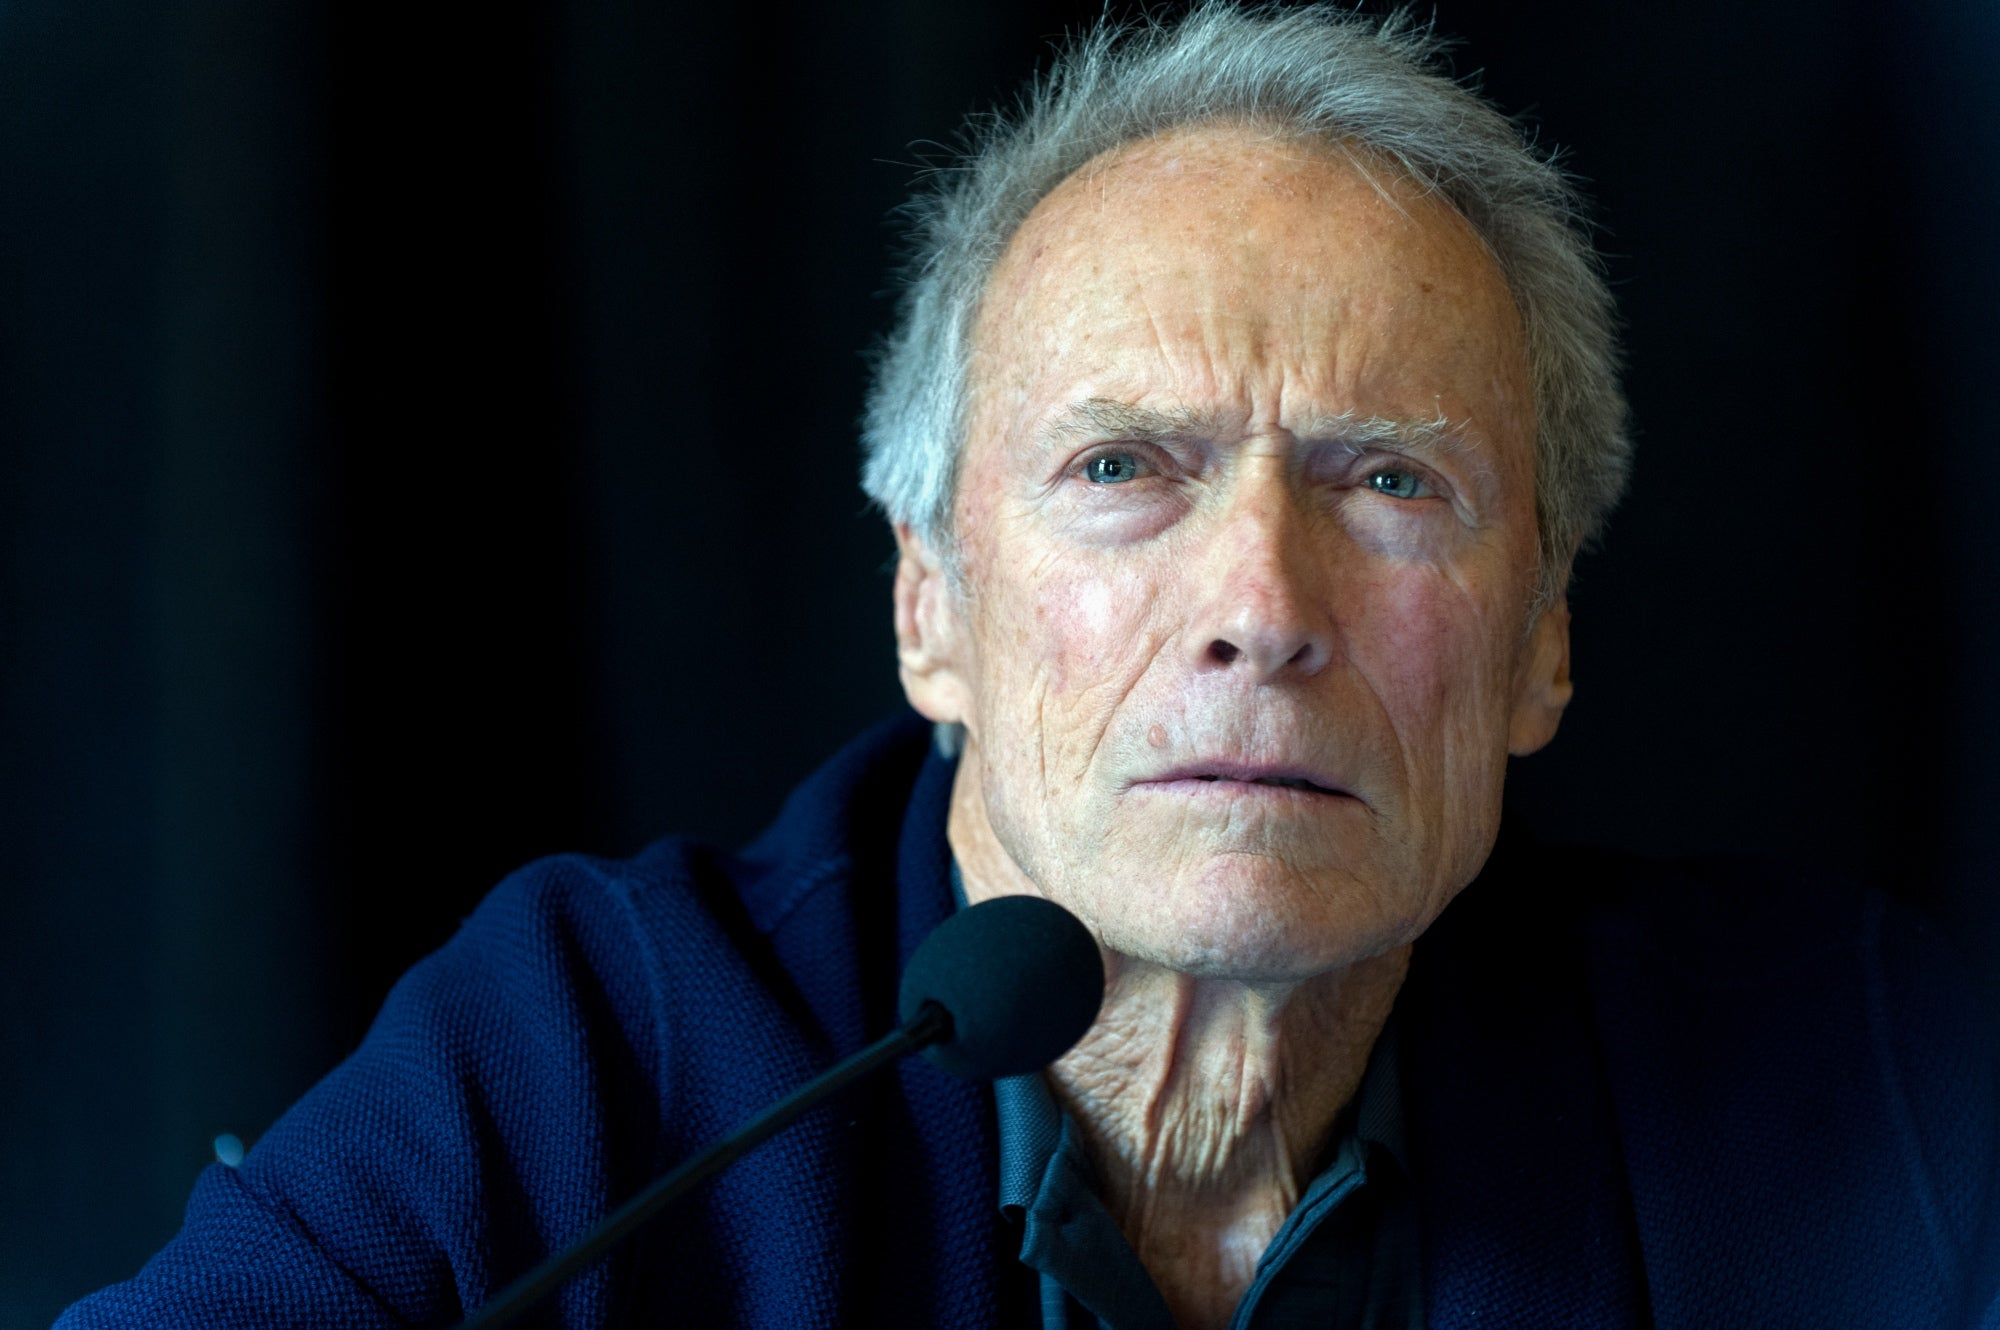 Actor and director Clint Eastwood, Golden Globe winner